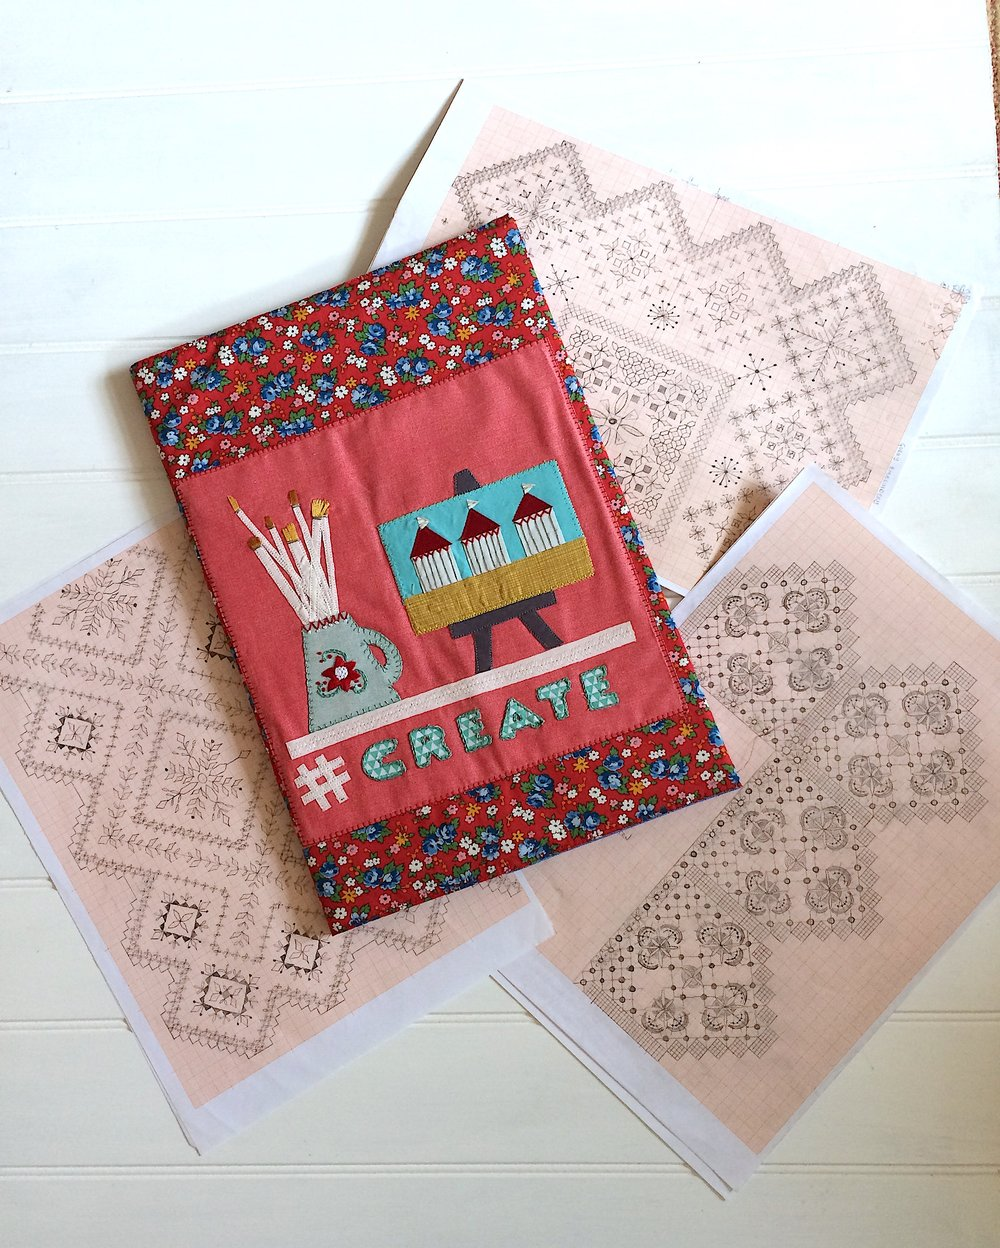 Make a sketchbook cover